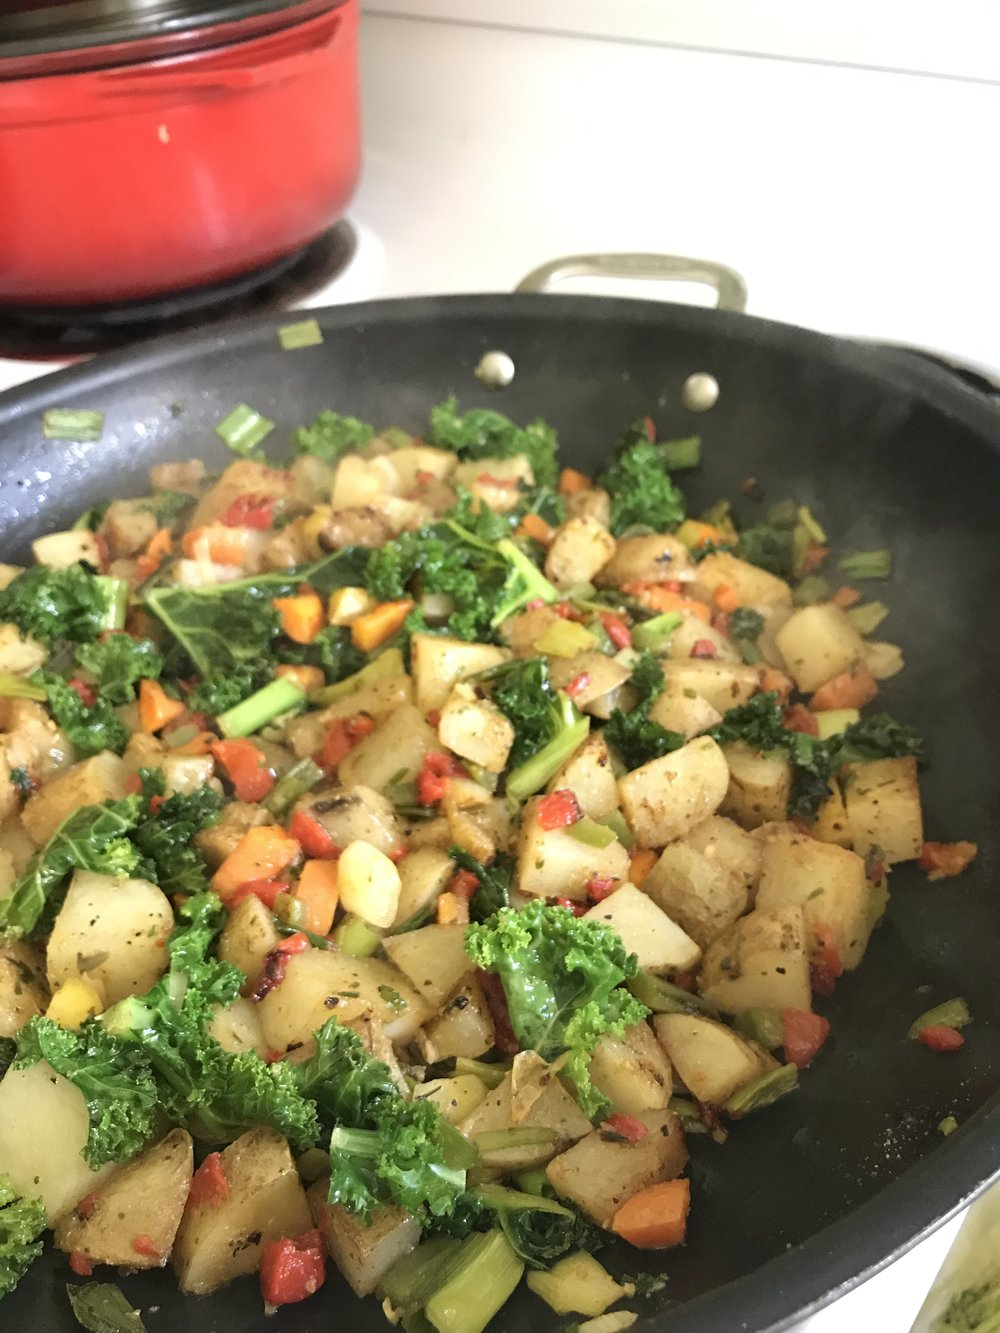 Added the scallions and green vegetables about halfway through cooking time, before the potatoes caramelized.